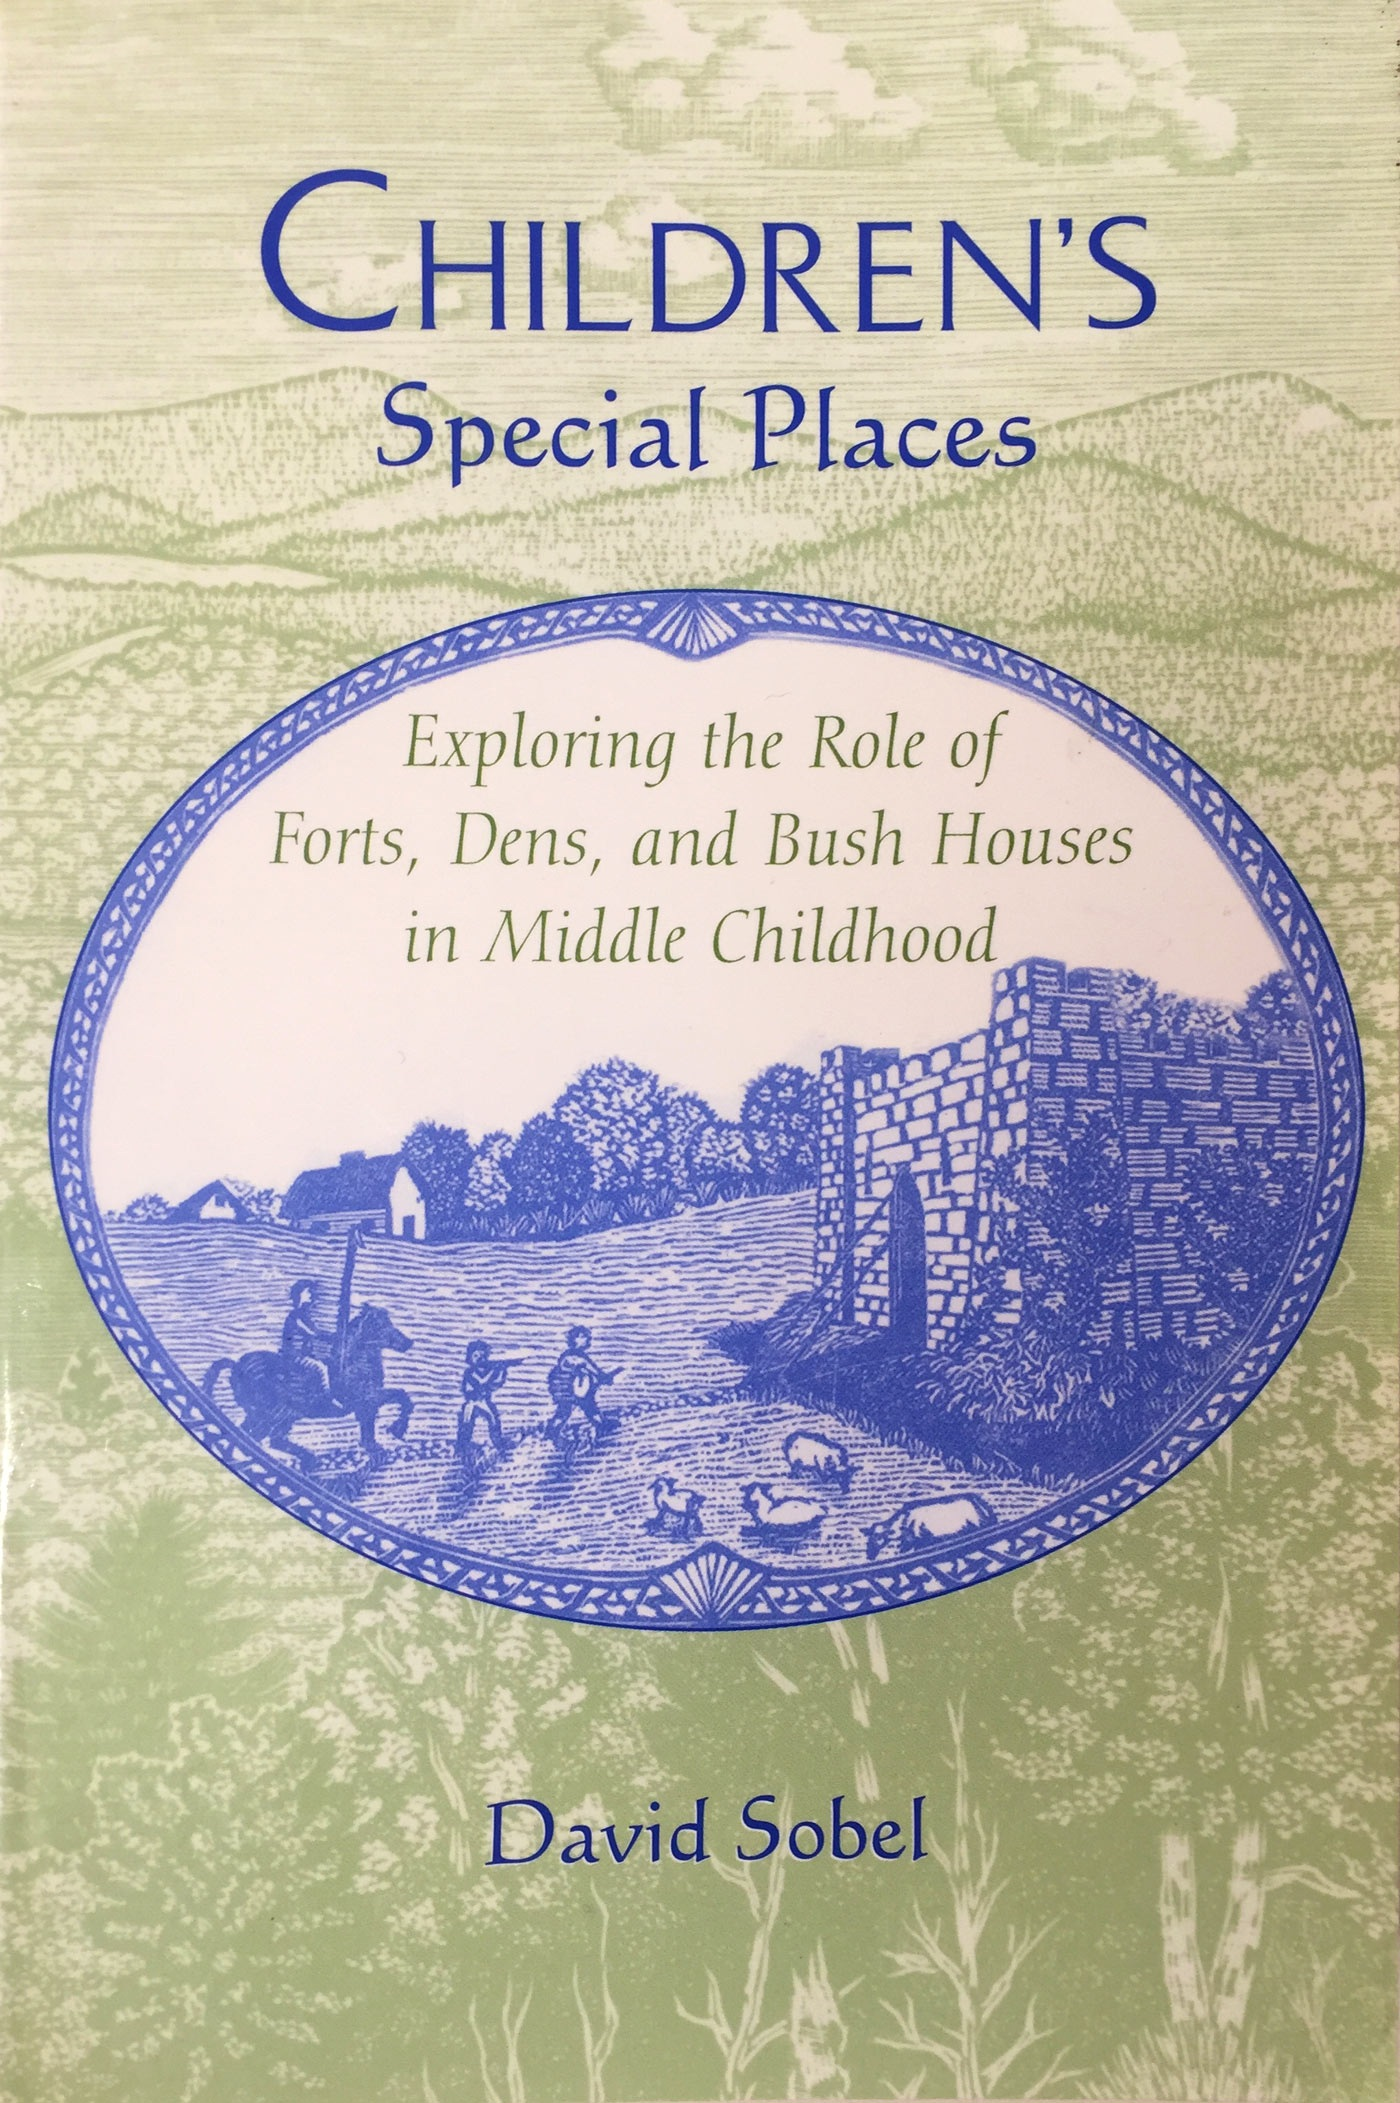 FORTS AND DENS.jpg